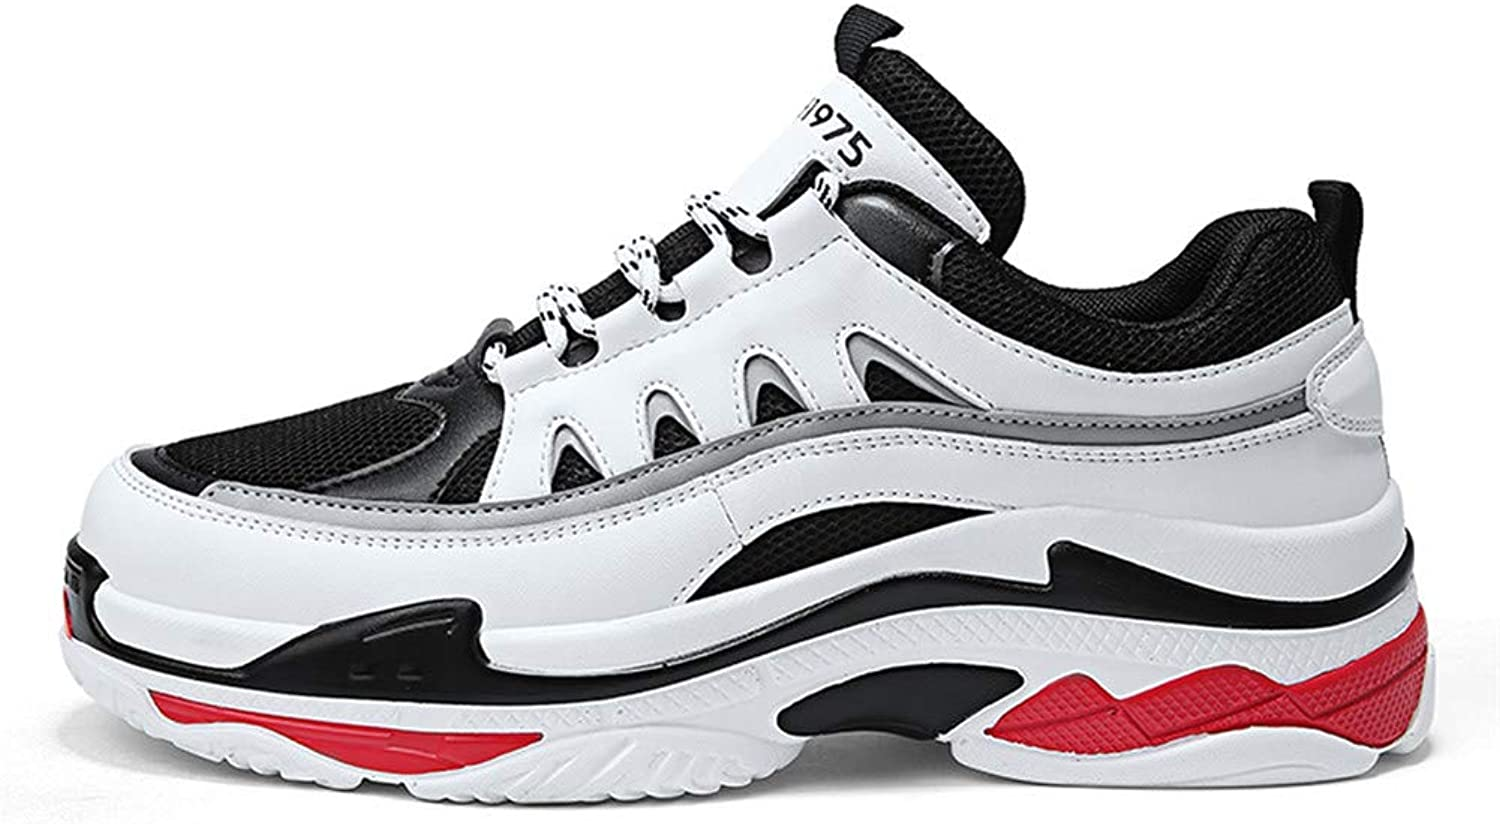 Lxmhz Men's Sneakers Mesh Ultra Lightweight Running shoes Outdoor Breathable Athletic Casual shoes